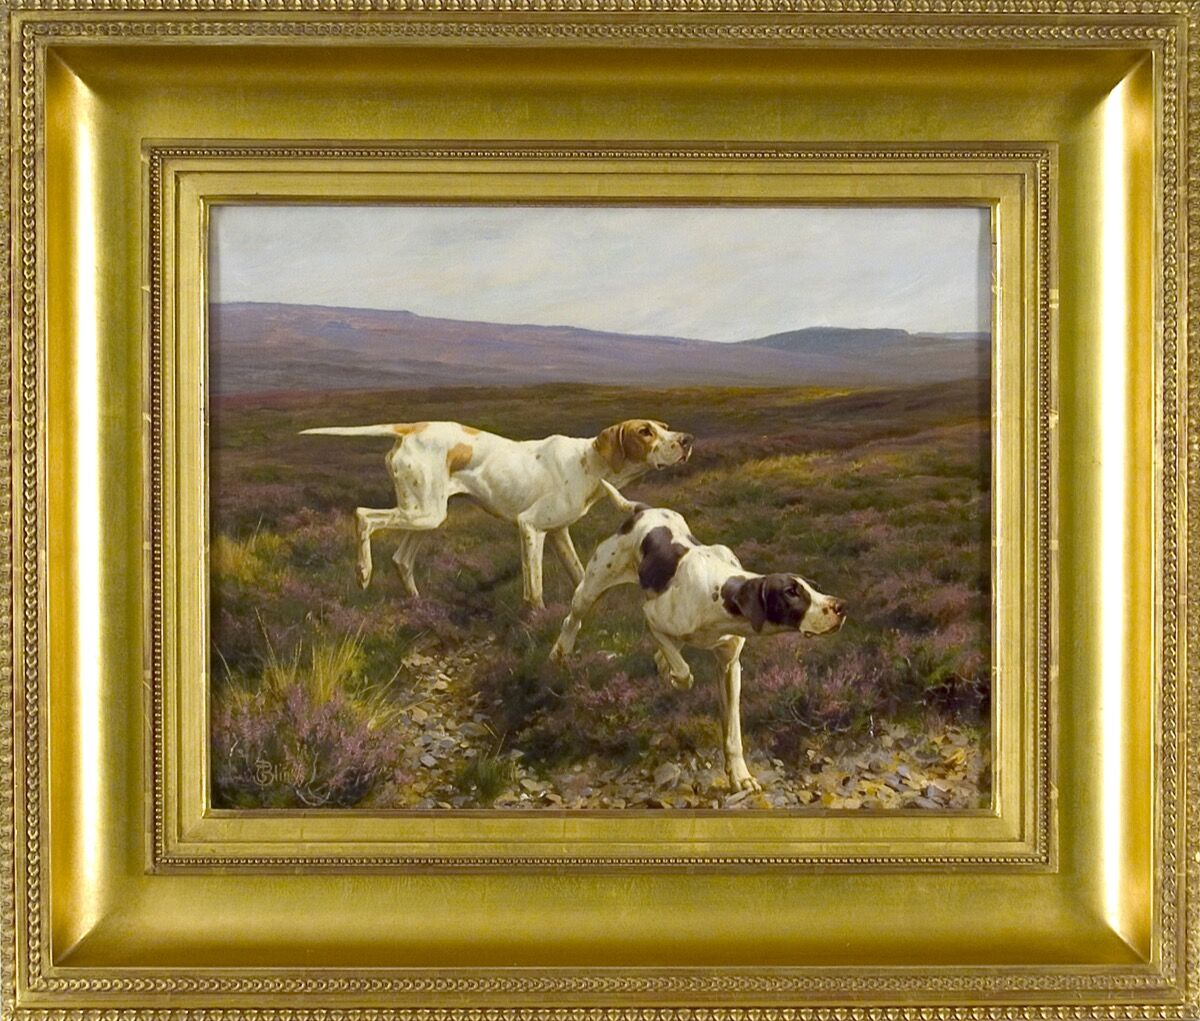 Thomas Blinks, Pointers in a Landscape. Courtesy of William Secord Gallery.